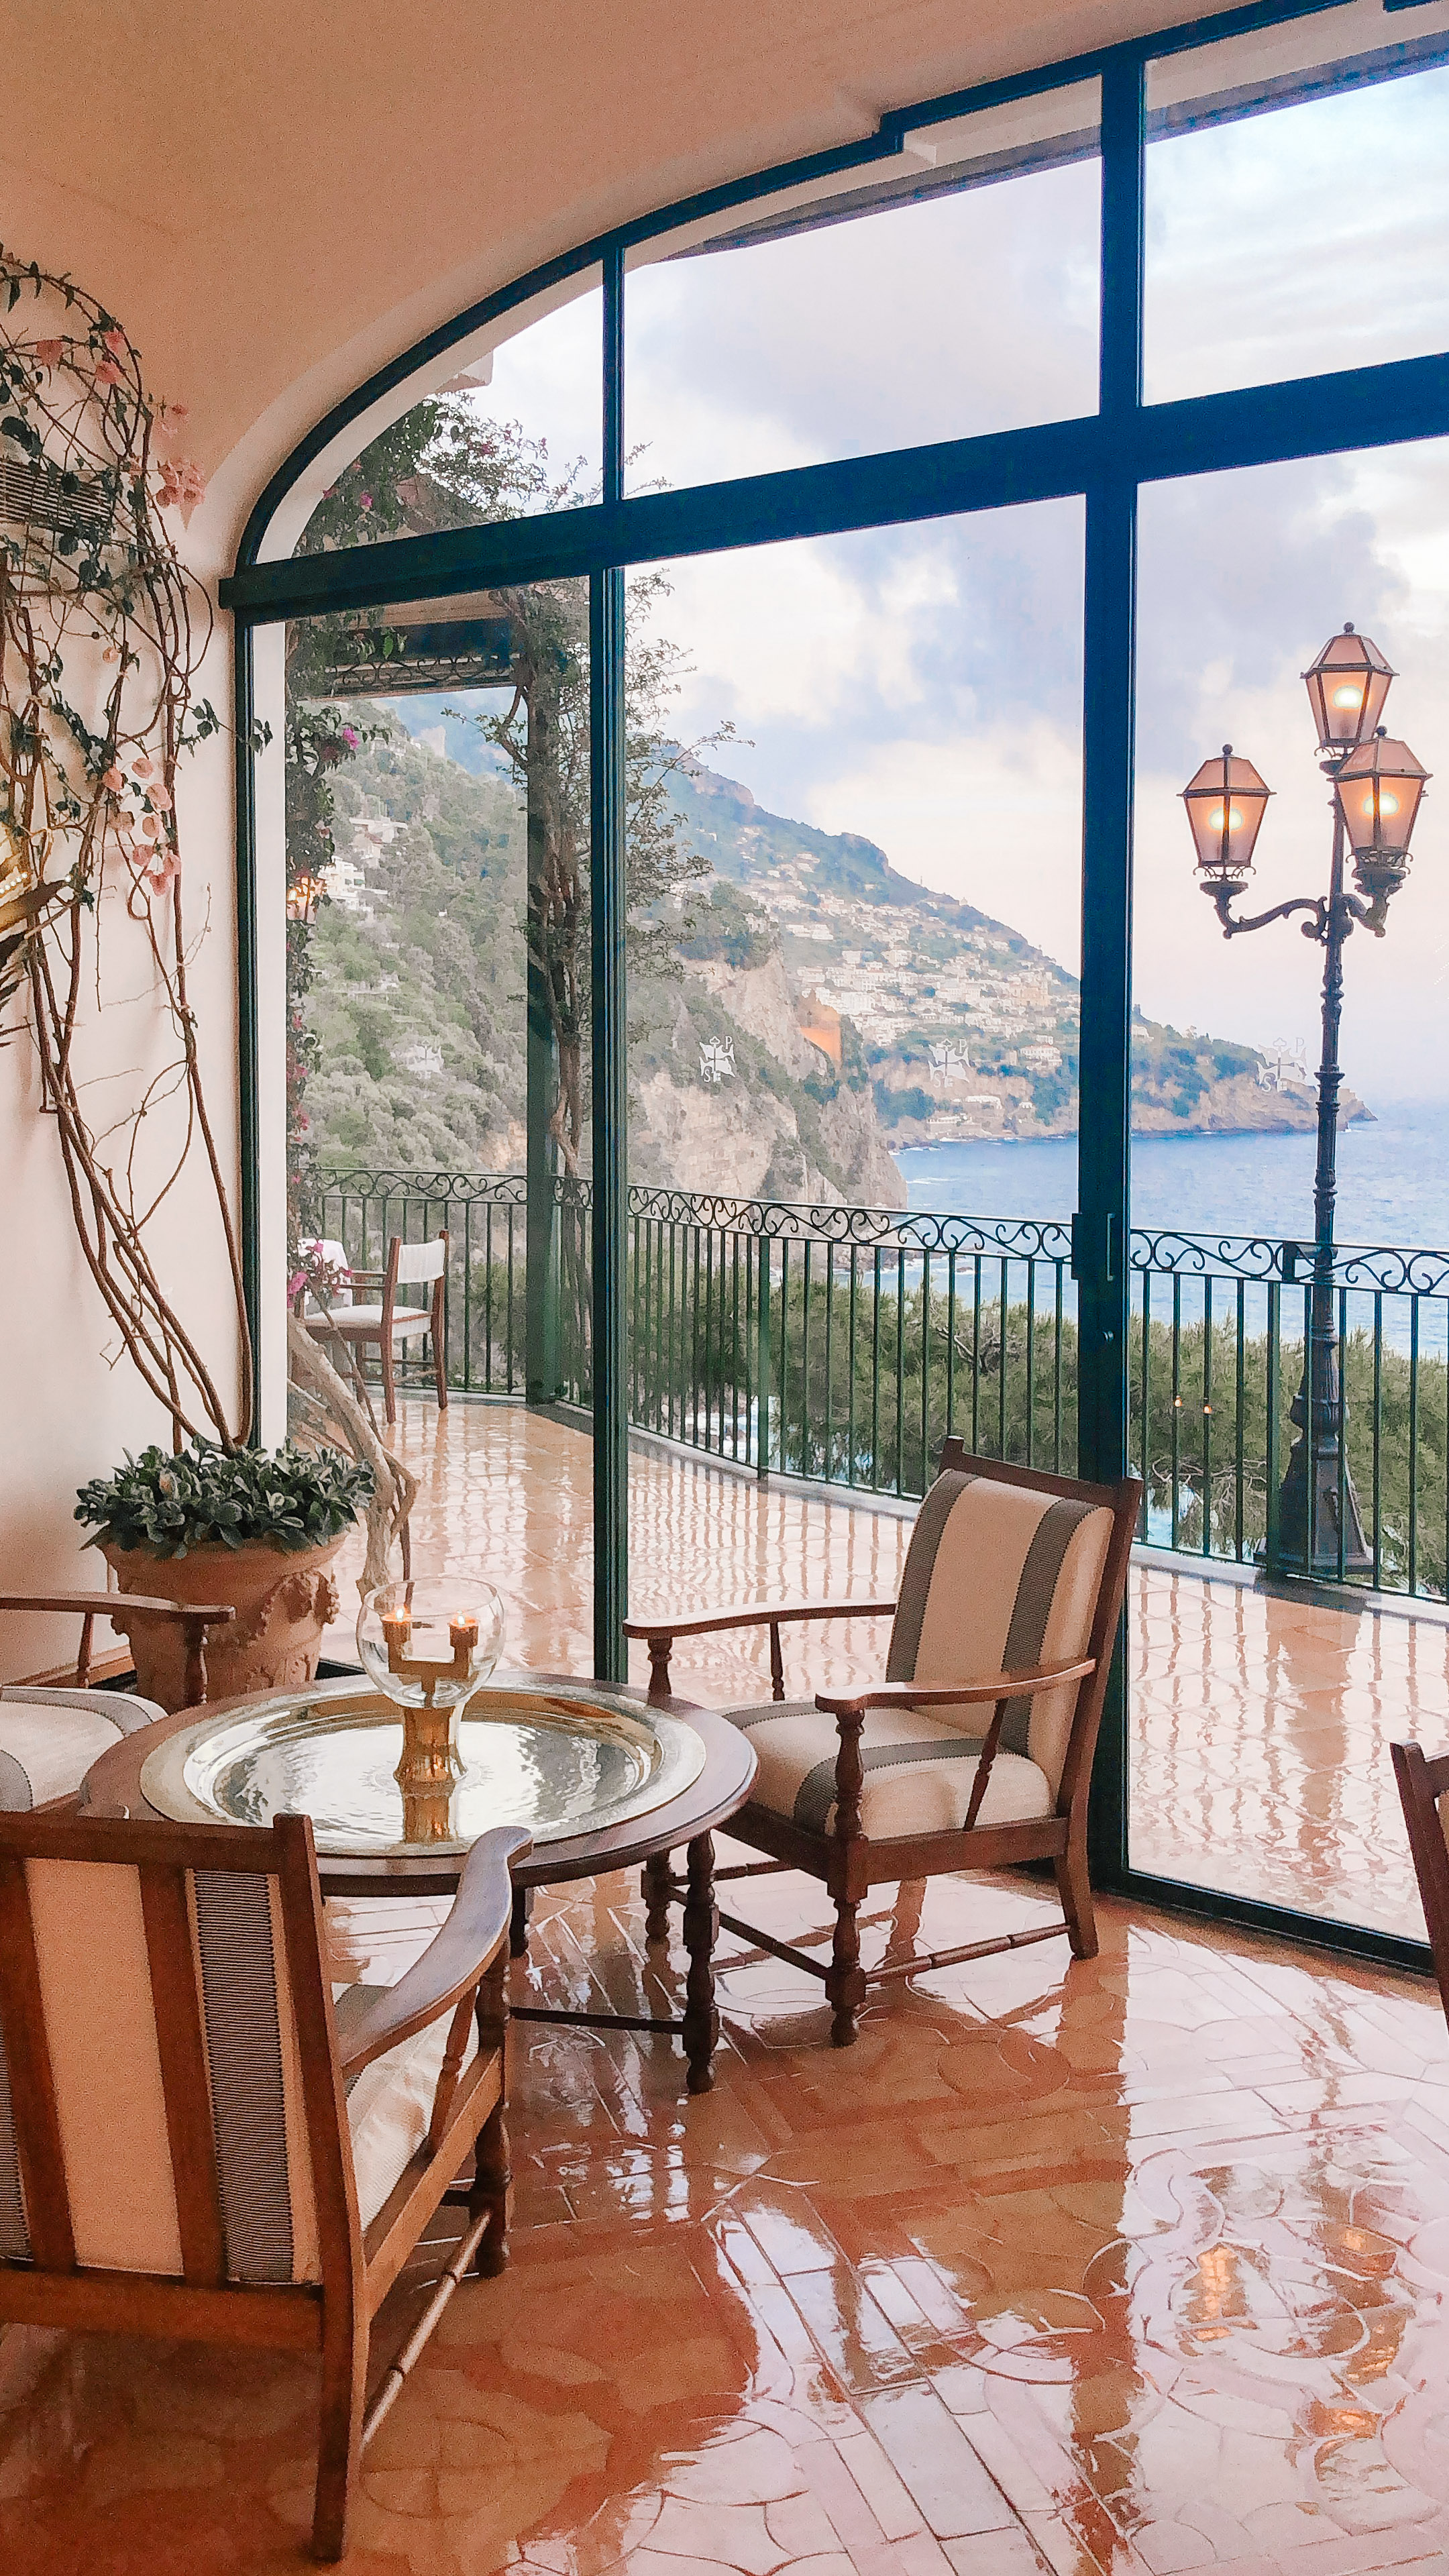 The Best Restaurants in Positano, Italy